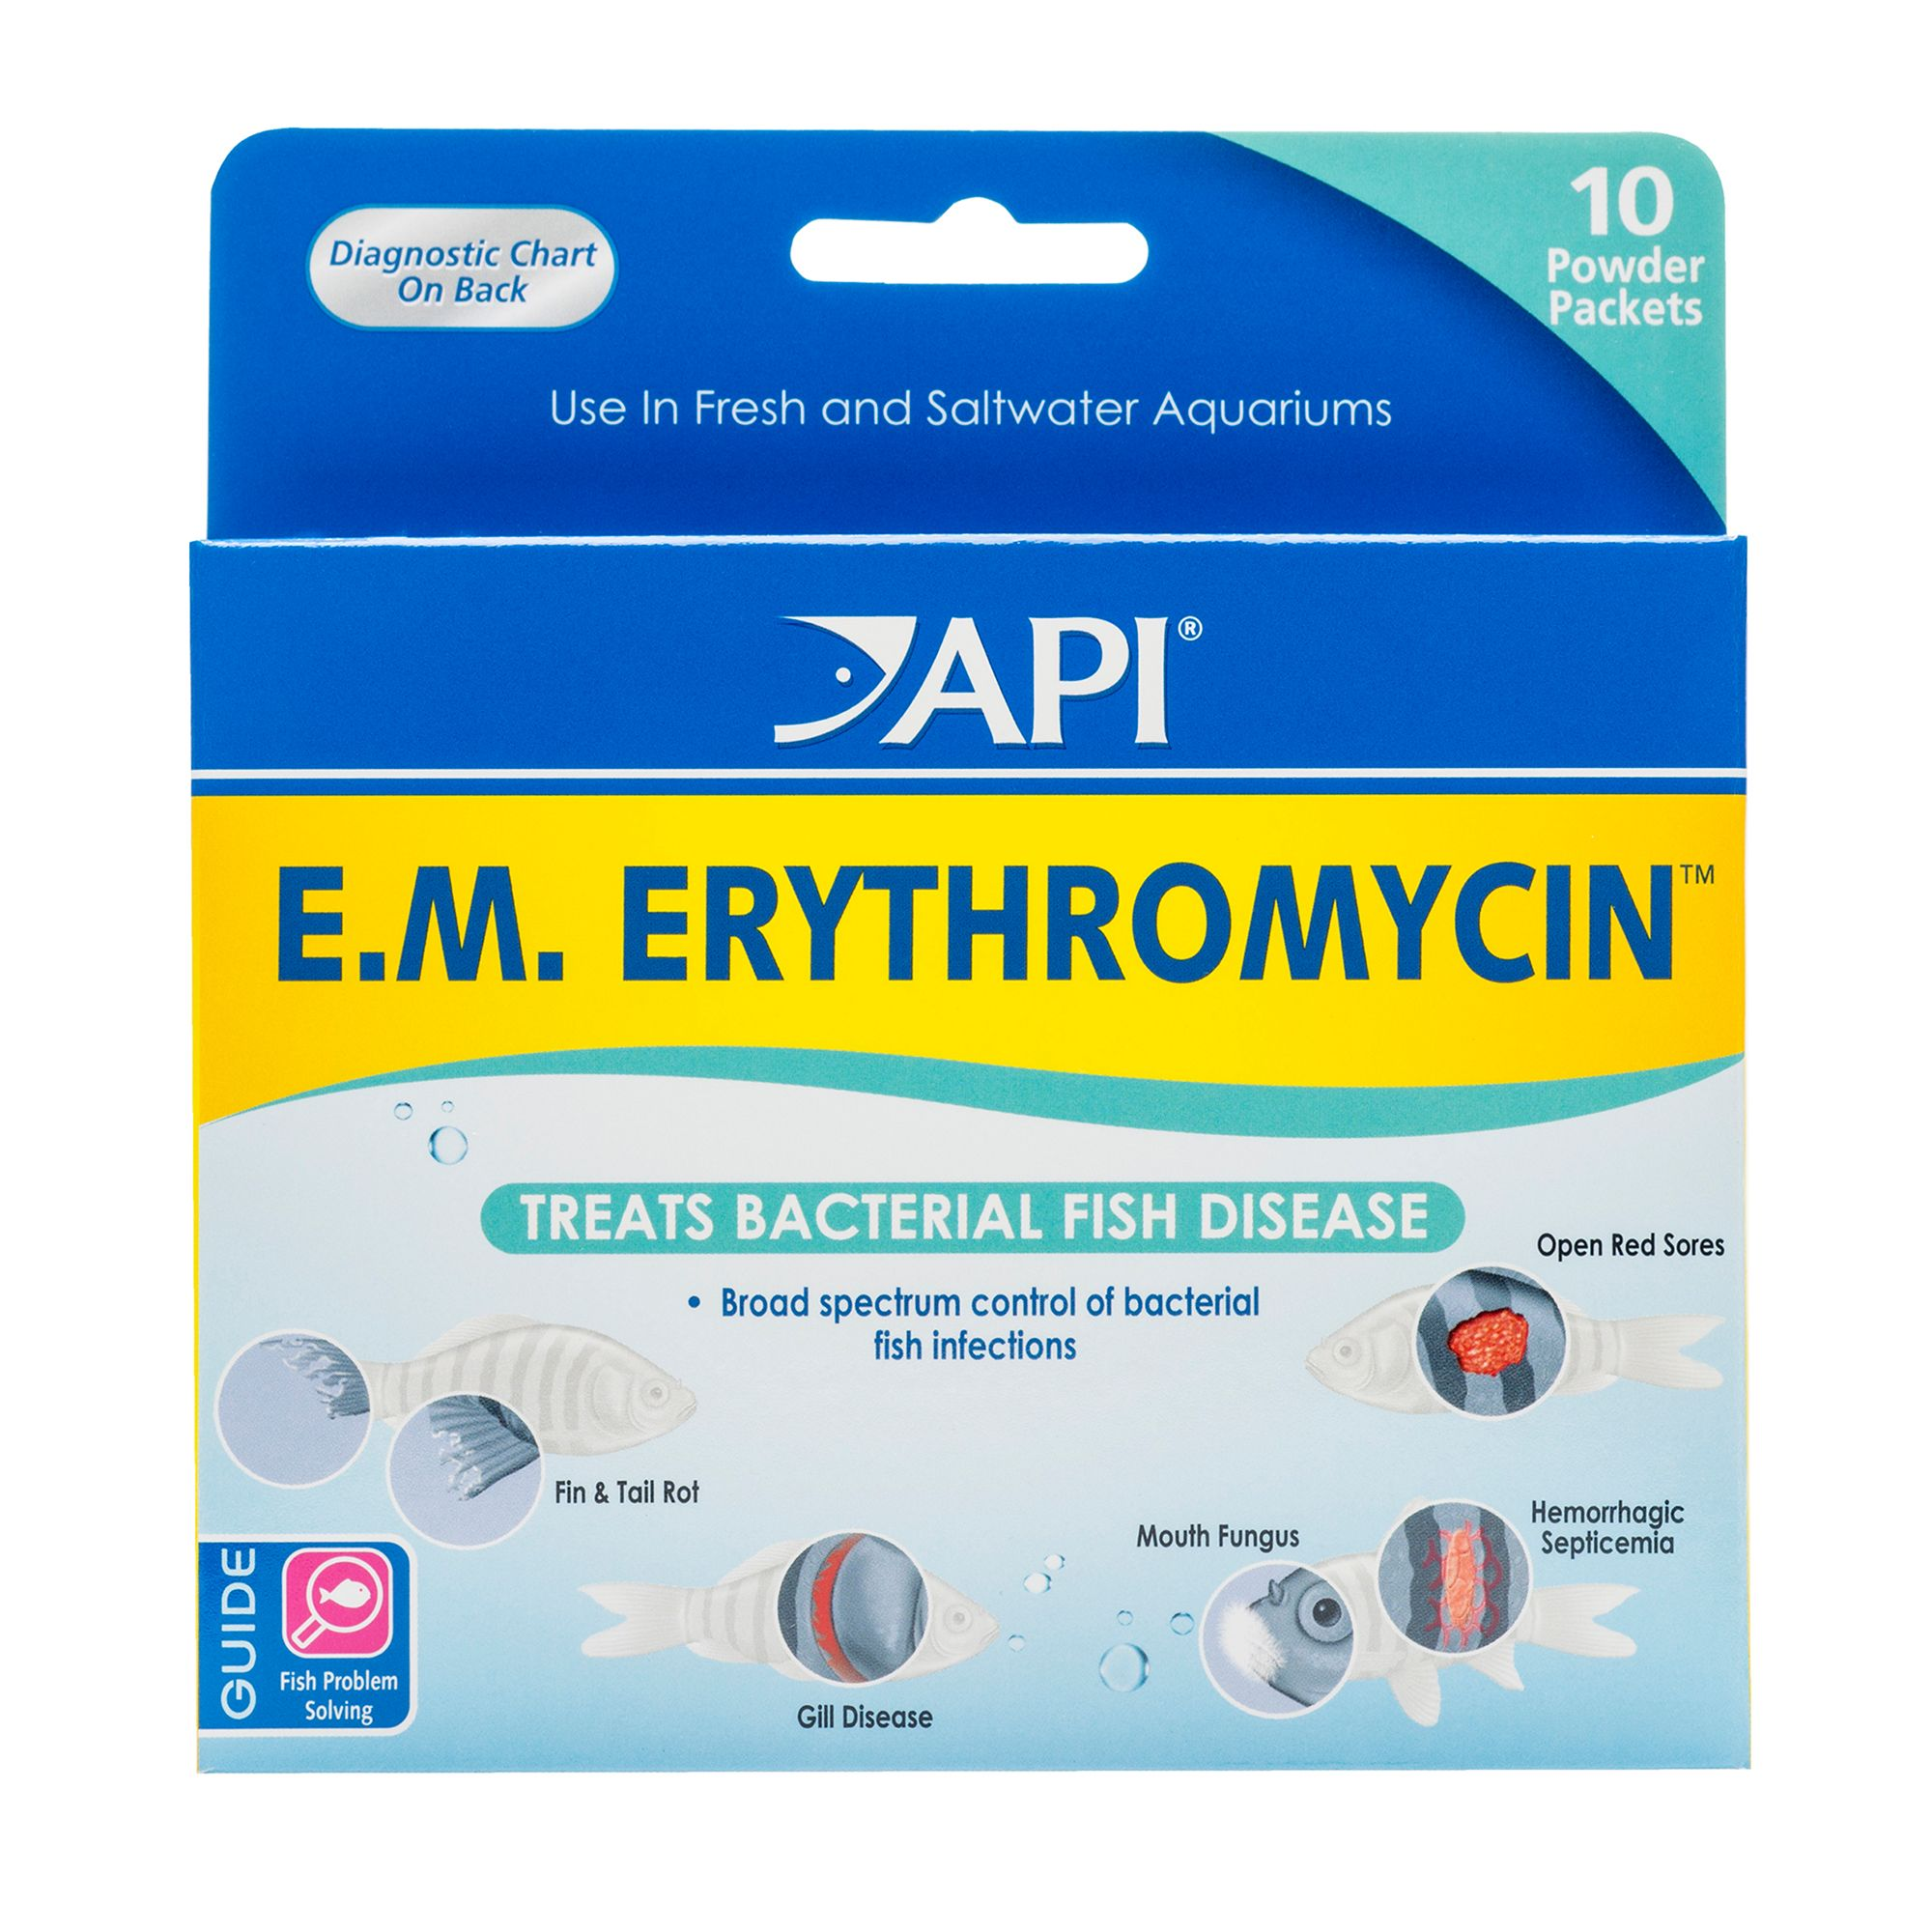 317163160558 upc e m erythromycin powder pack 10 ct for Fish antibiotics walmart